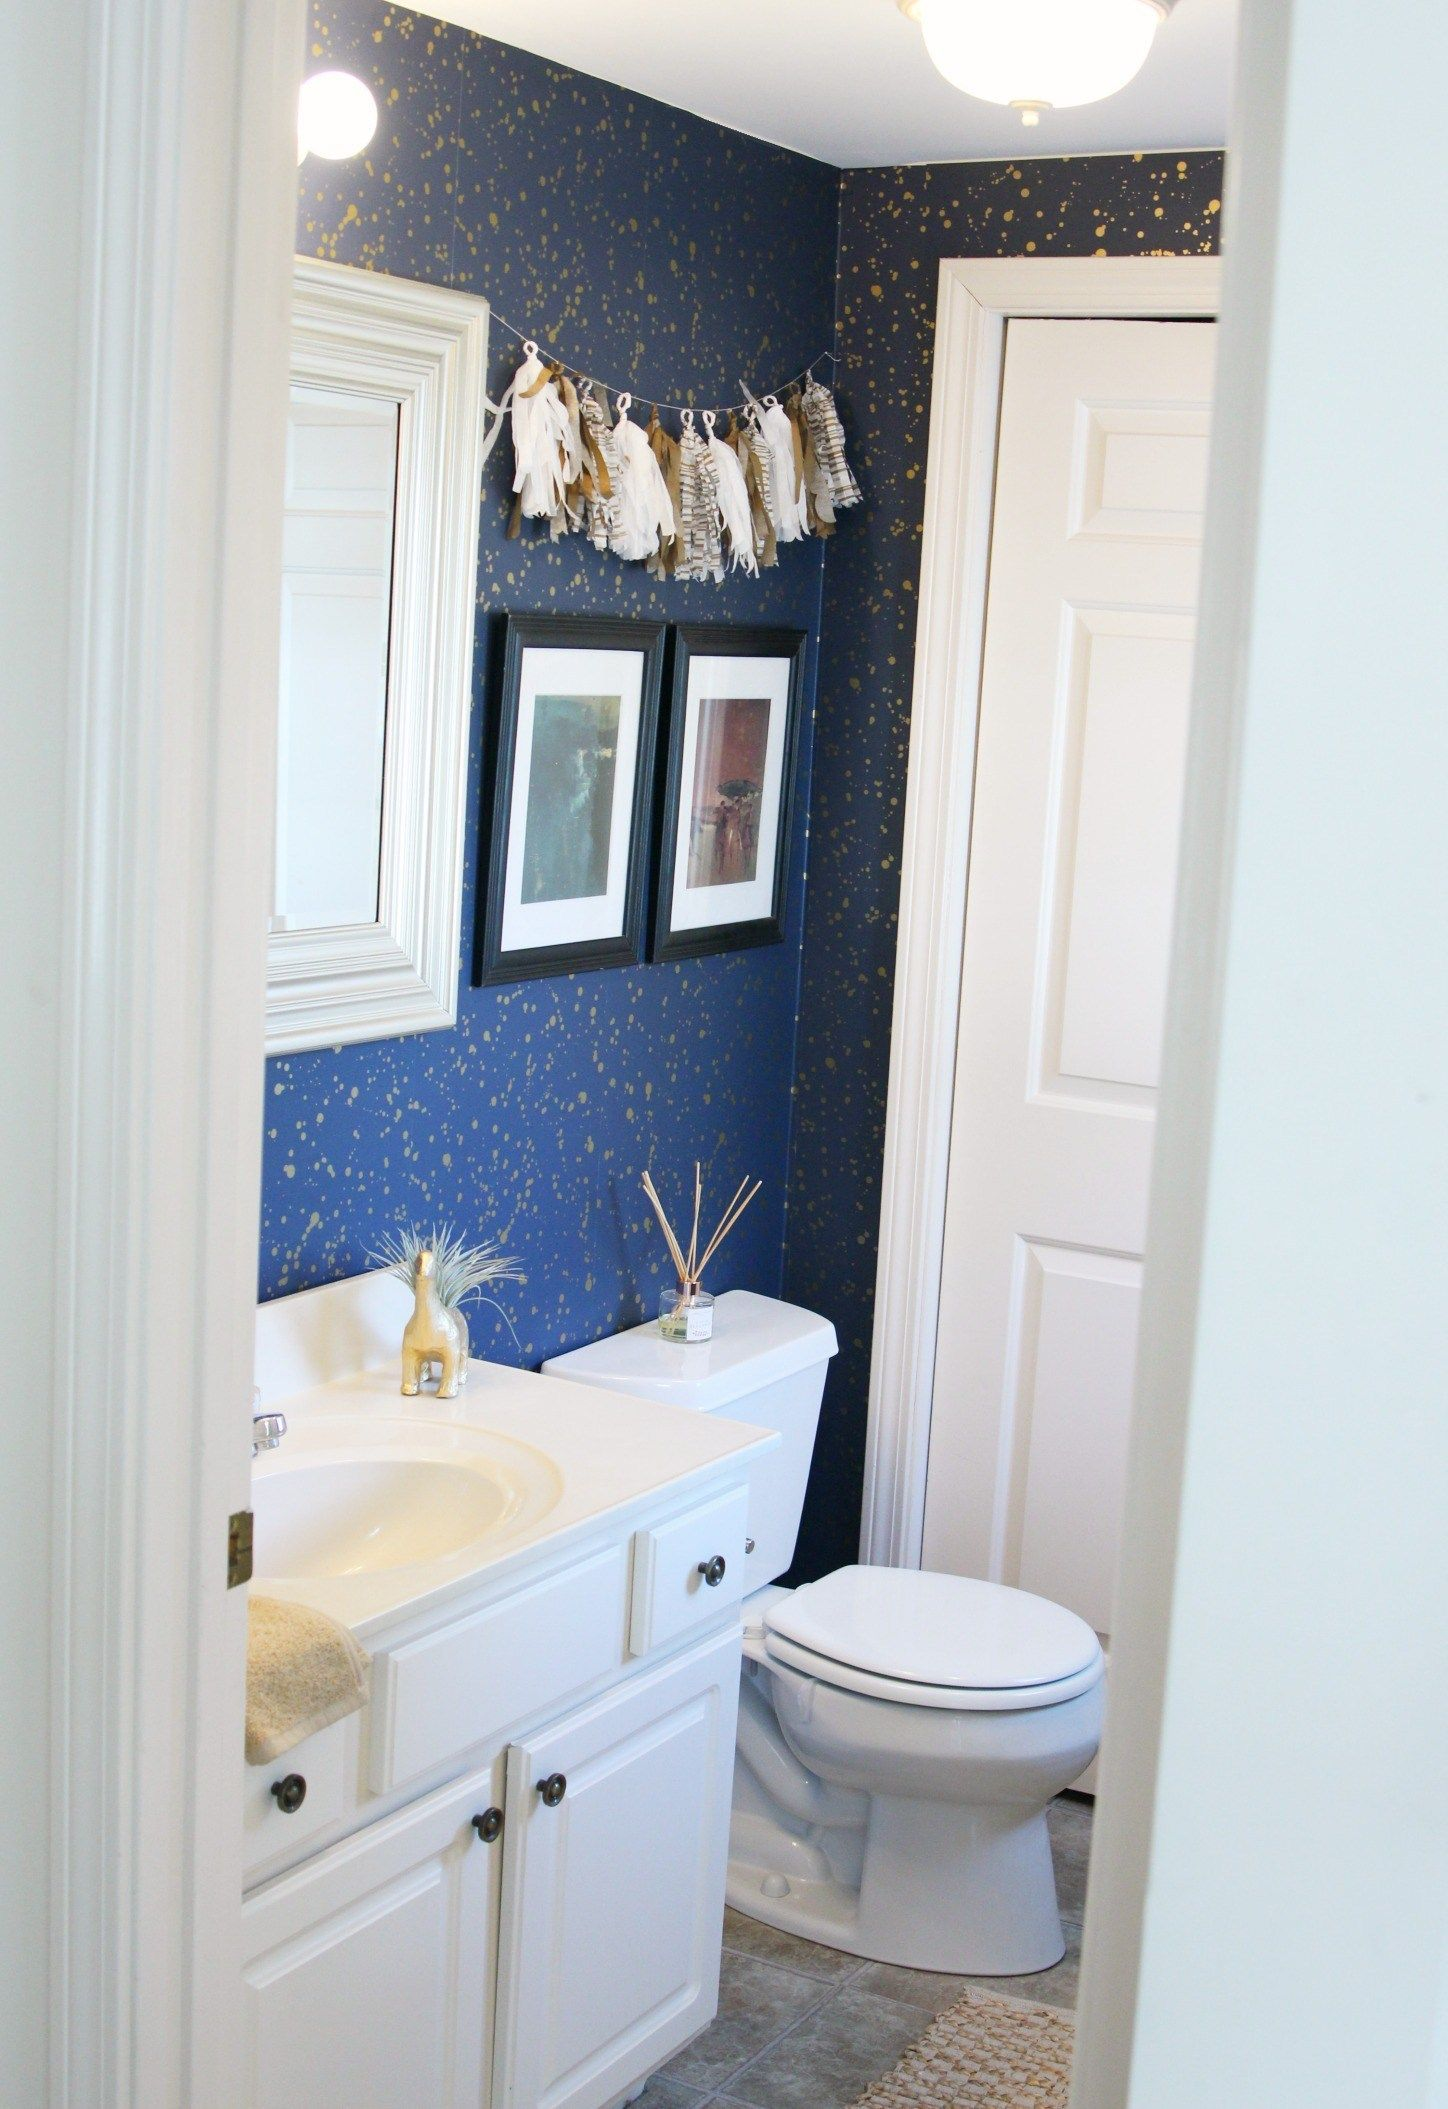 How to Decorate Your Rental Space? Bathroom Rental Decor ...